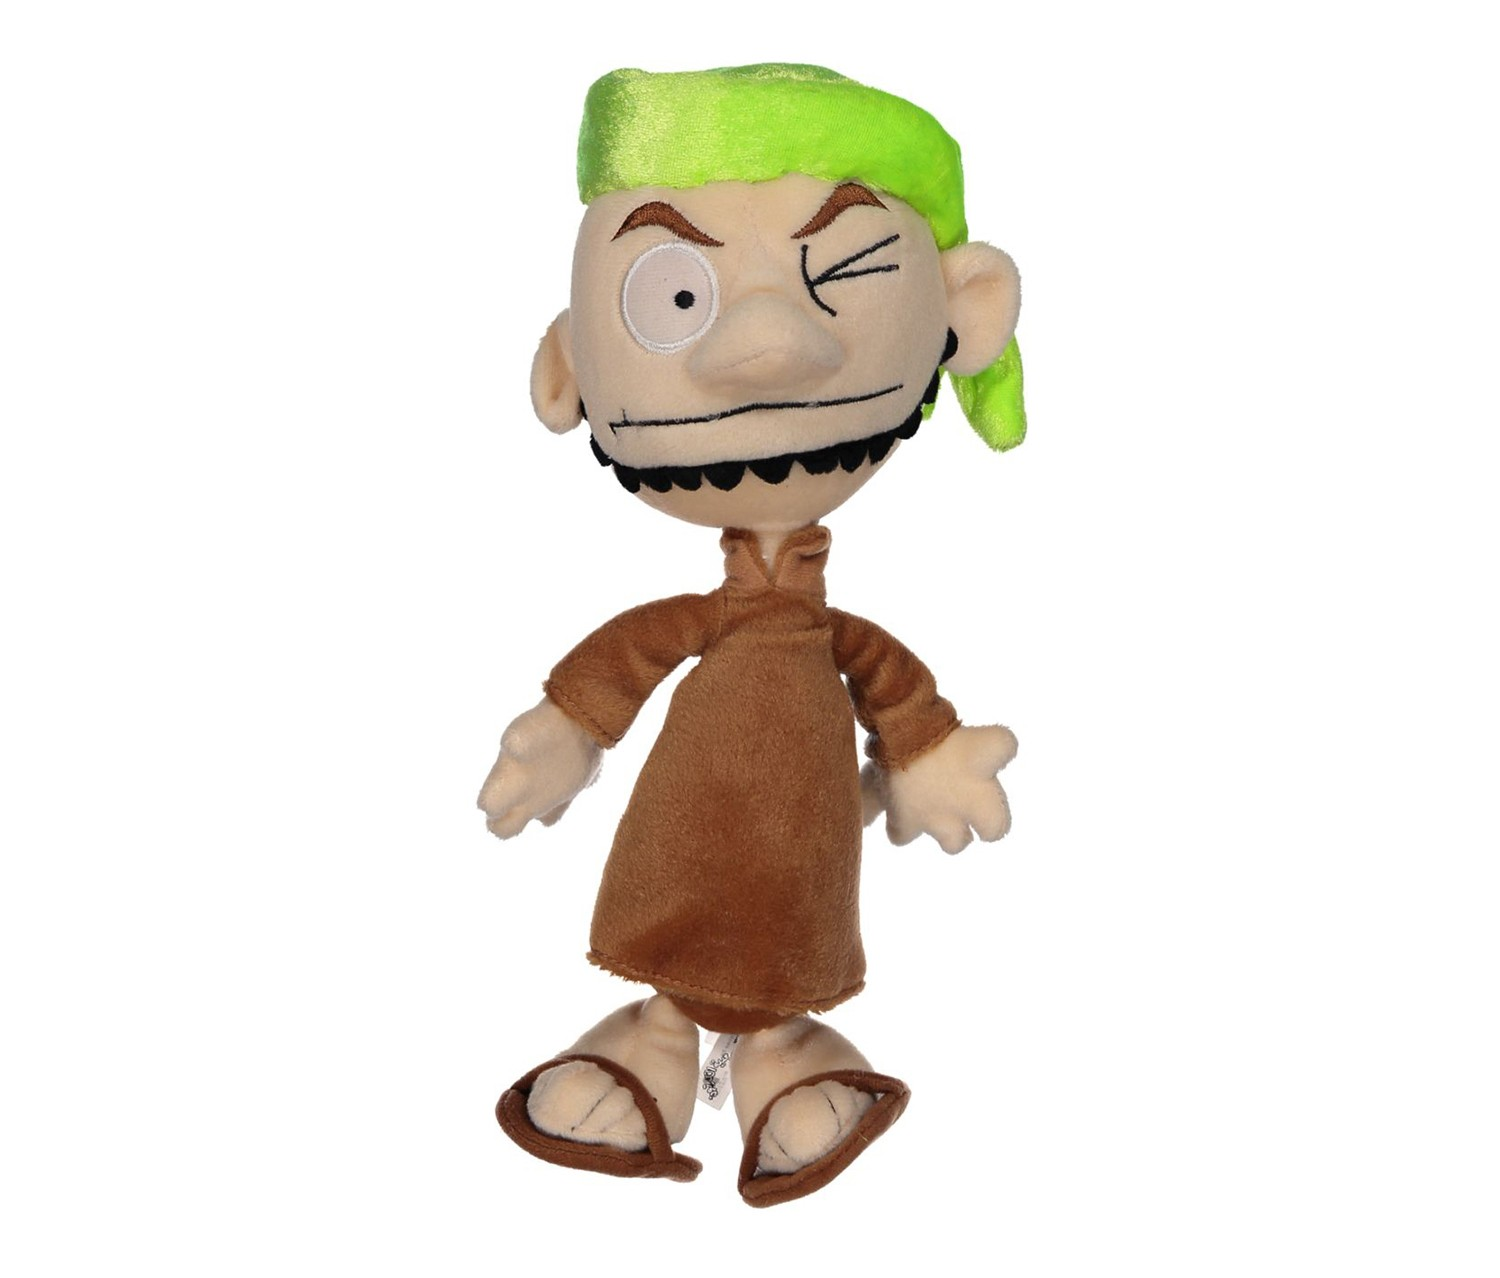 Mhayir Plush Doll